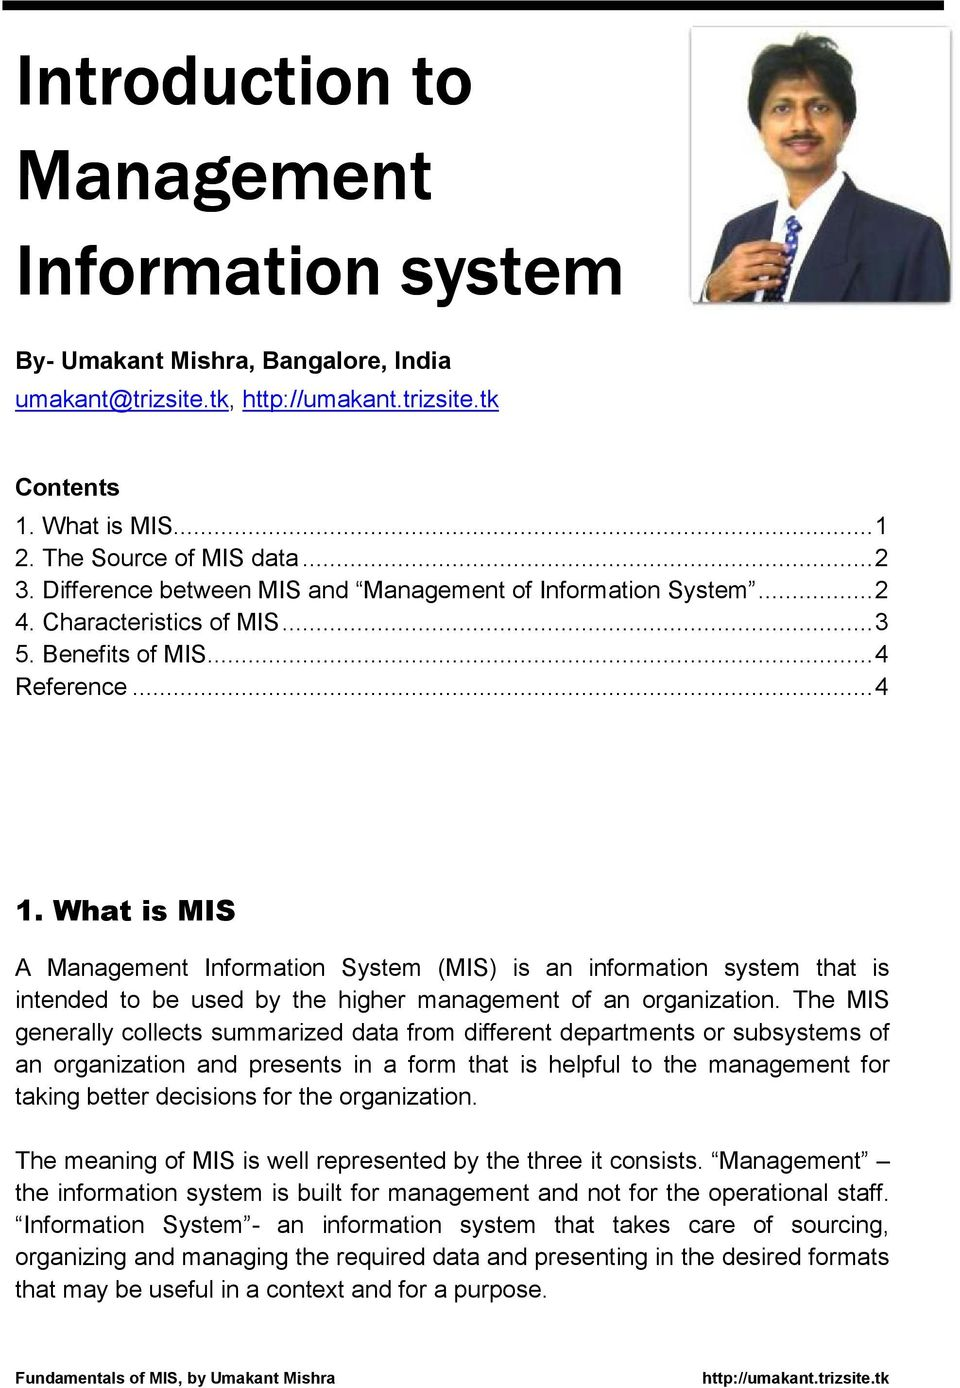 Introduction to Management Information system - PDF